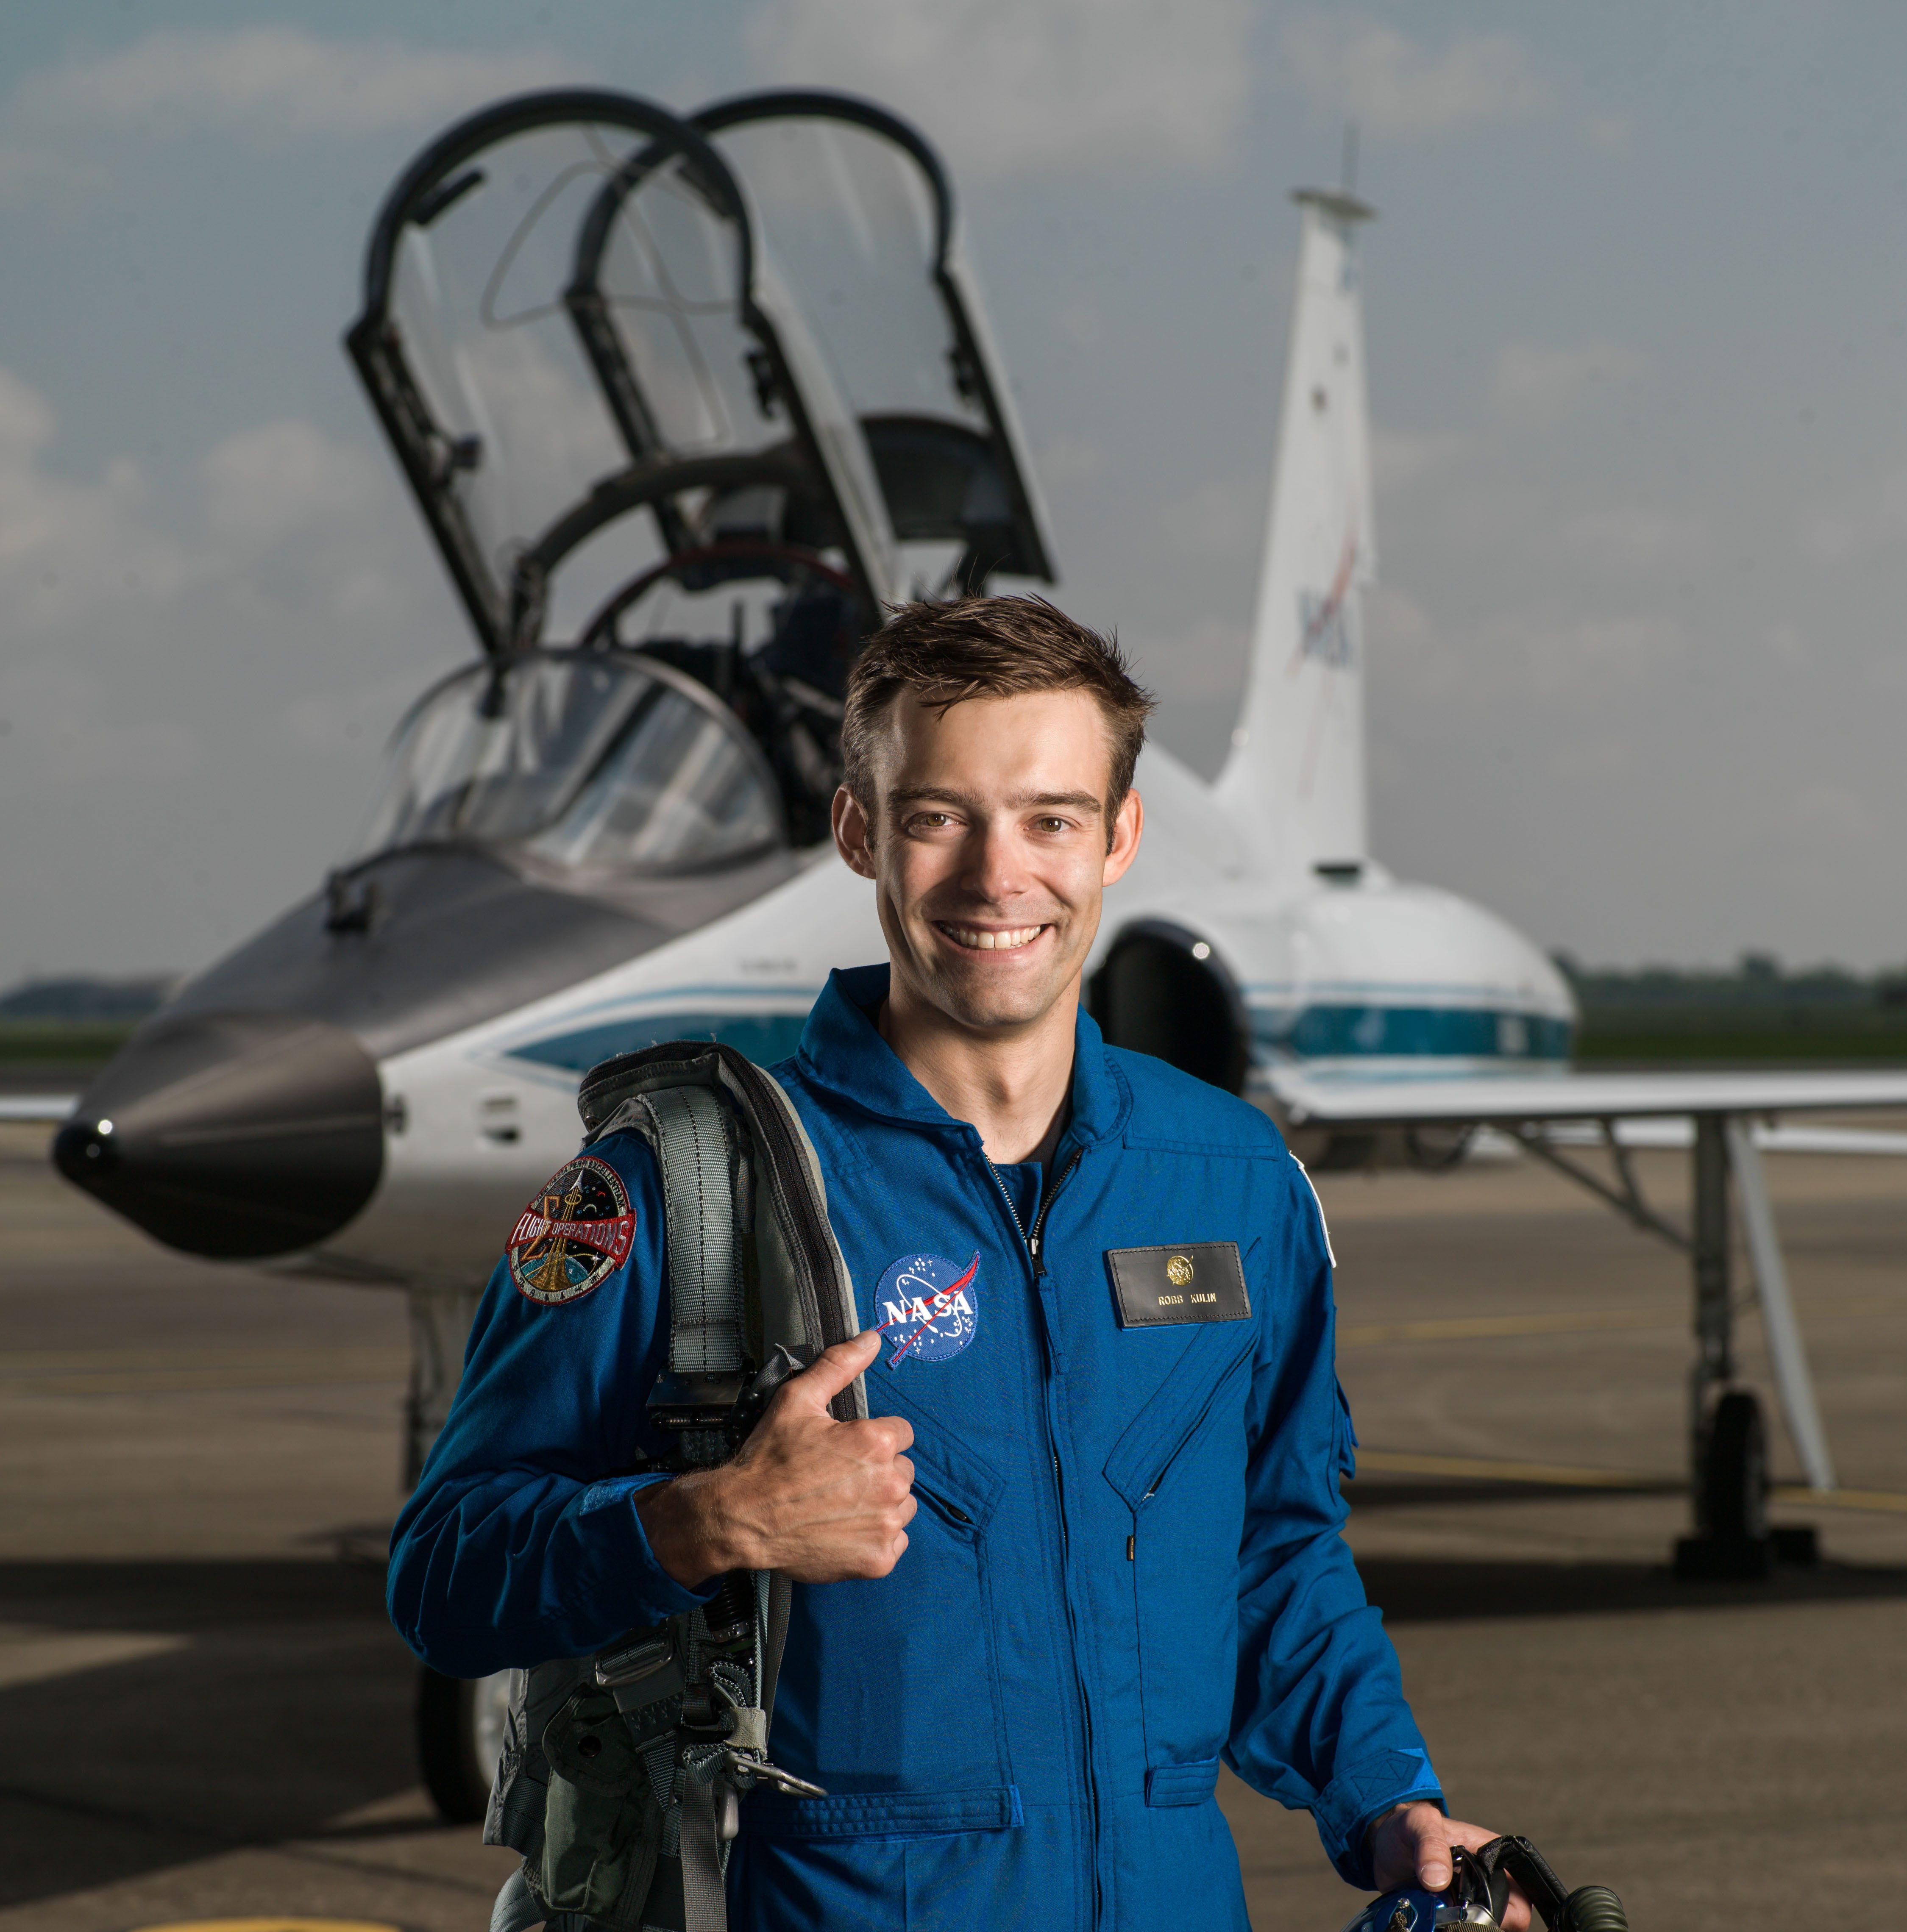 Astronaut candidate resigns from NASA for the first time in 50 years ""